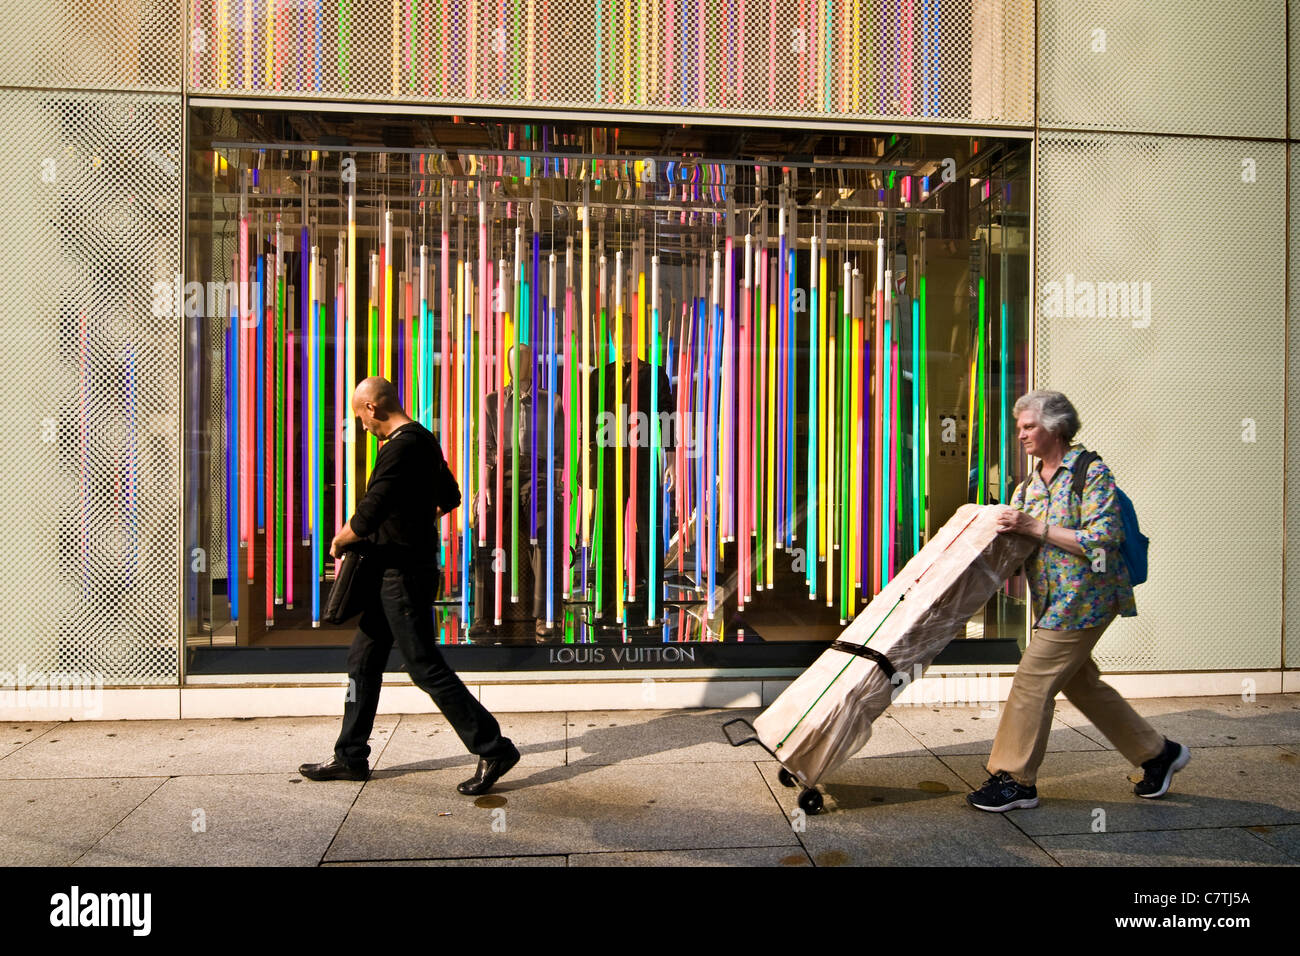 Usa, New York City, Louis Vitton fashion shop on Fifth Avenue - Stock Image